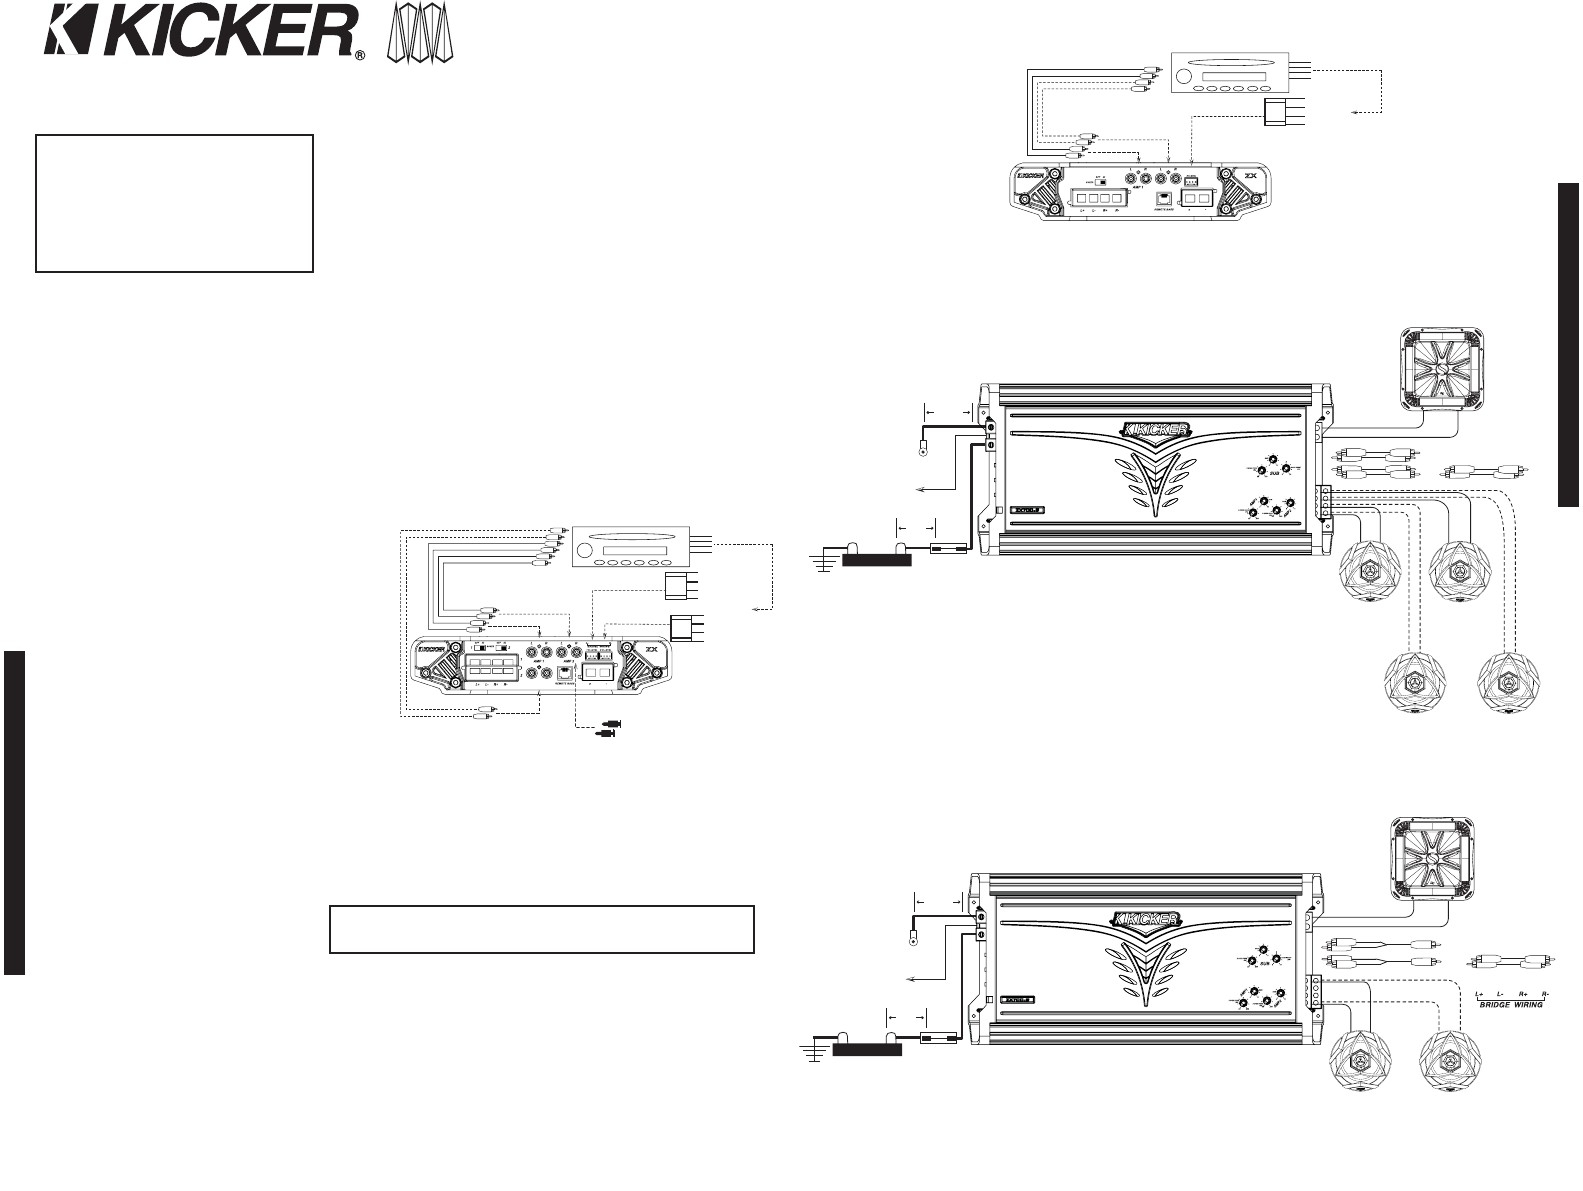 1 Ohm Kicker Cvr 12 Wiring Diagram from i2.wp.com